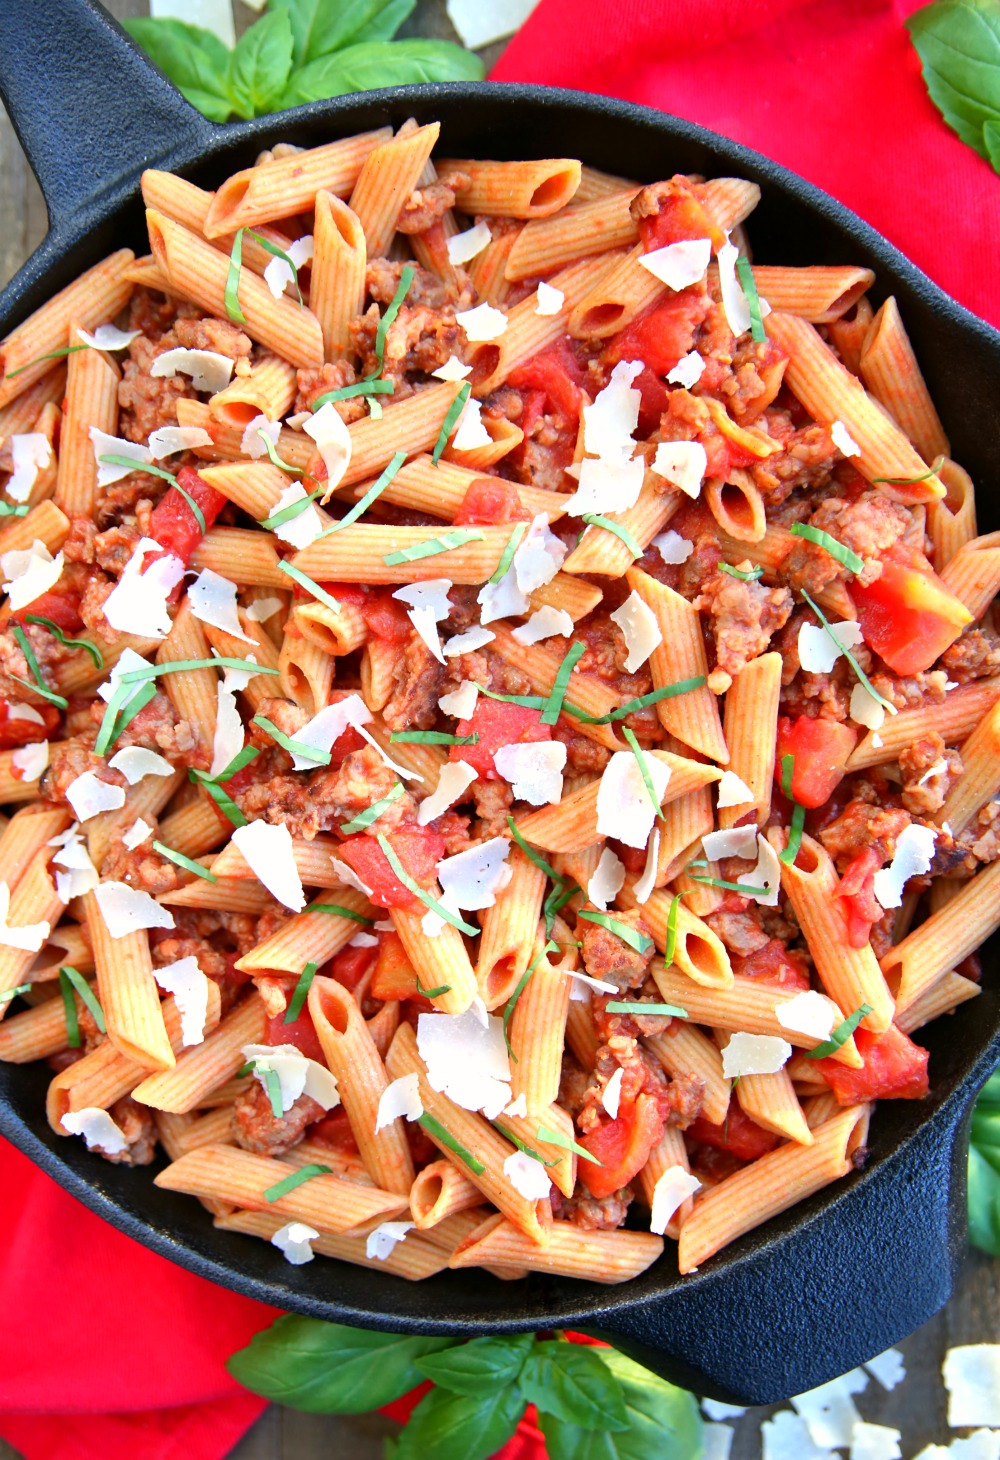 Italian Sausage Skillet Meal - A delicious one skillet meal that comes together in less than 30 minutes and only calls for 6 ingredients.